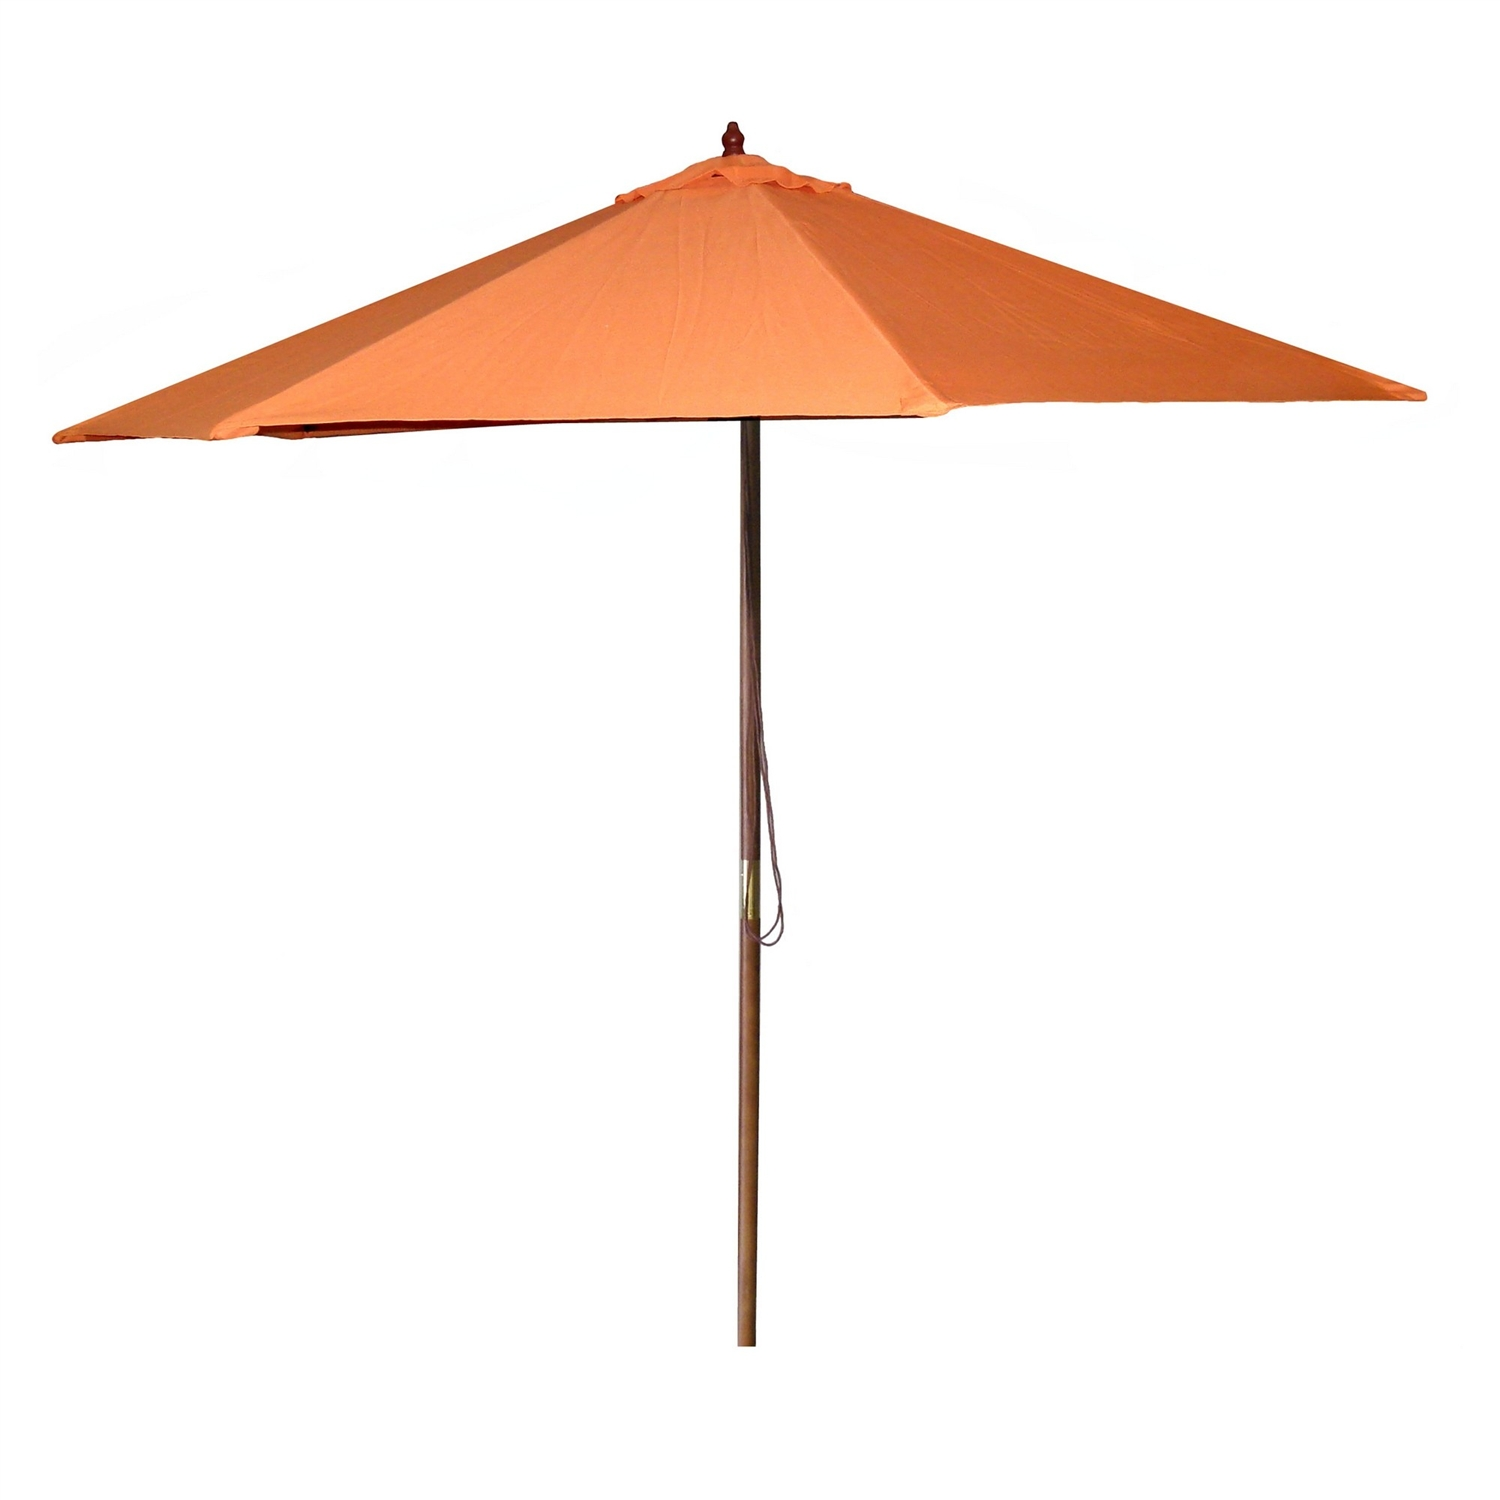 9-Ft Patio Pulley Umbrella with Wood Pole and Orange Canopy, OMB103895 :  This 9-Ft Patio Pulley Umbrella with Wood Pole and Orange Canopy would be a great addition to your home. We recommend to take inside during extreme weather to avoid damage. To clean use a mild soap and water solution. Not intended for Commercial Use, only warrantied for 500 hours of direct sunlight for commercial use. Maintenance free.